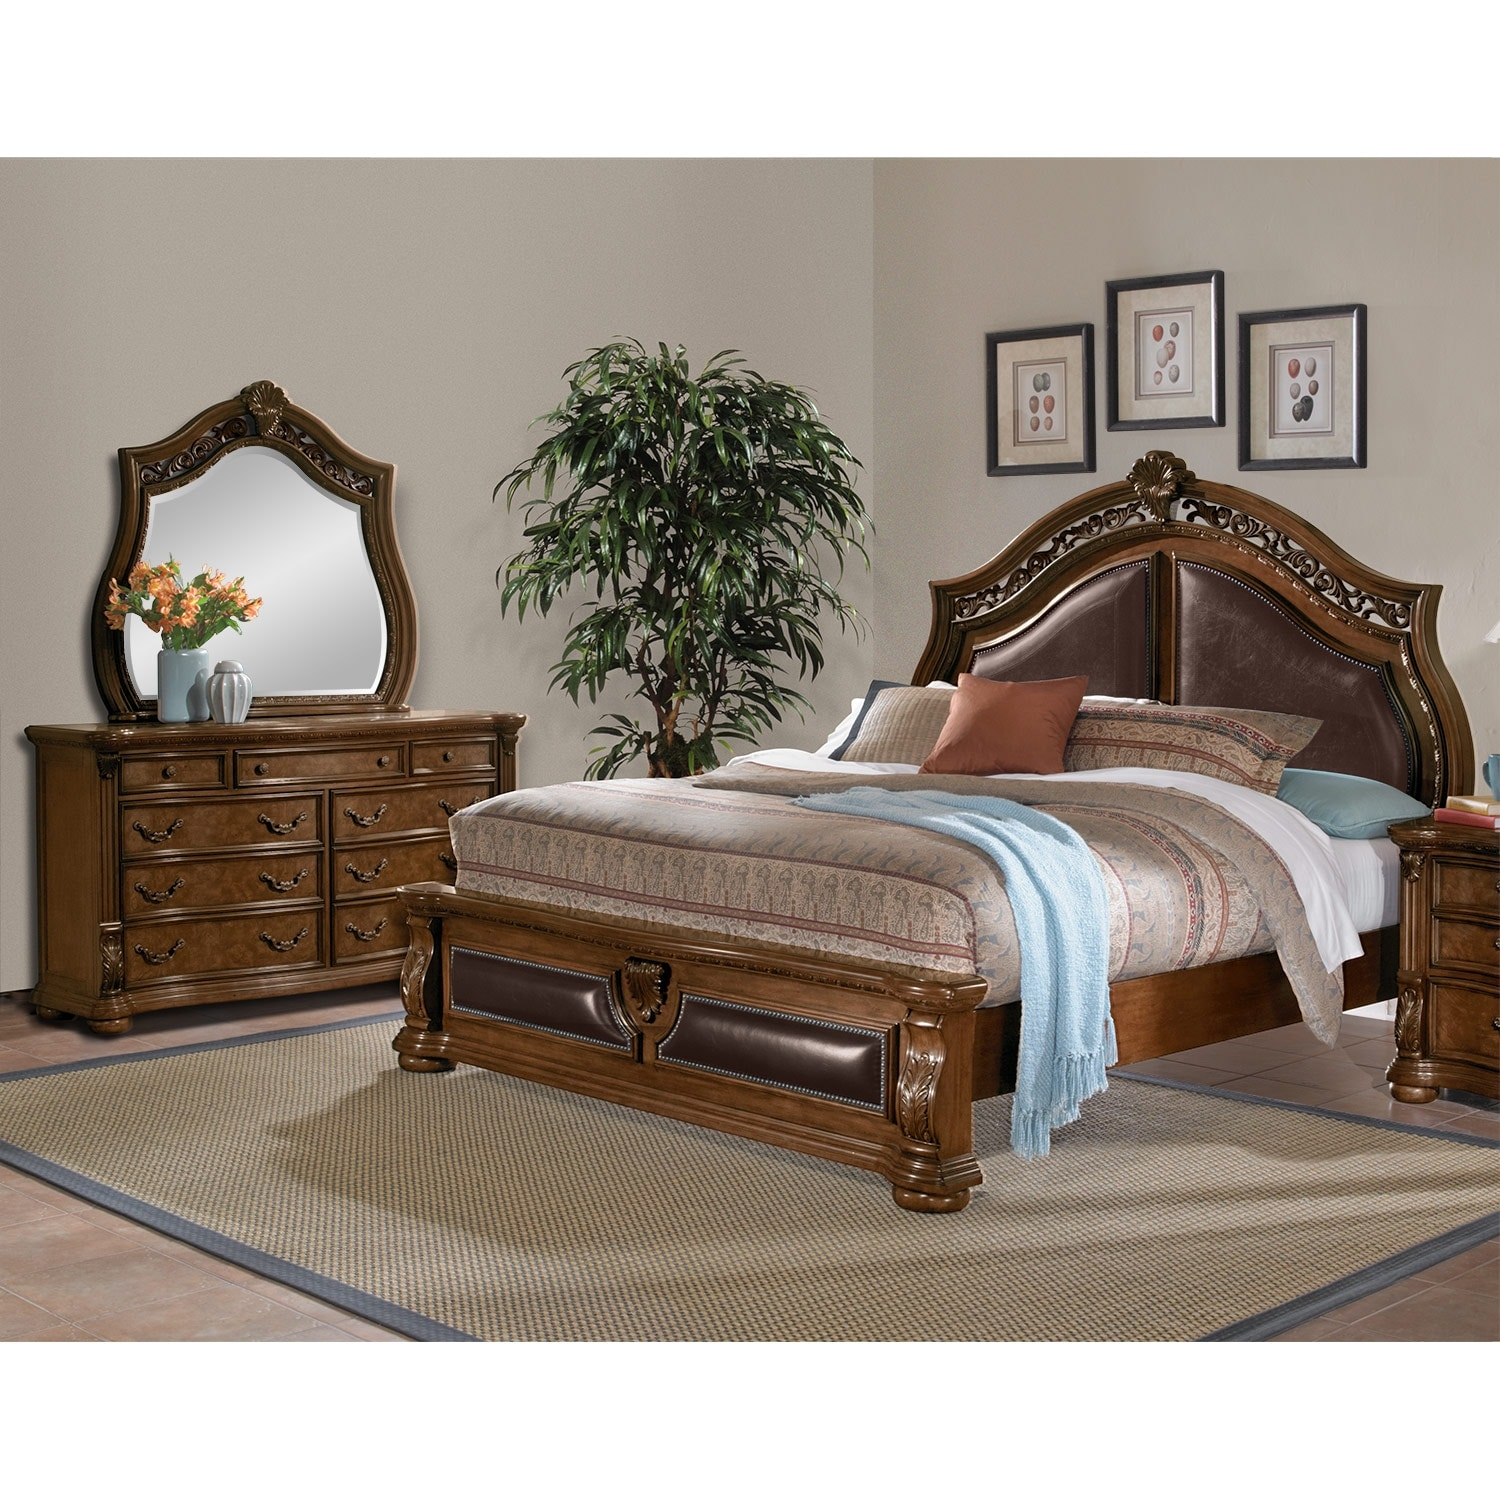 The morocco collection pecan value city furniture for Value city furniture bedroom set